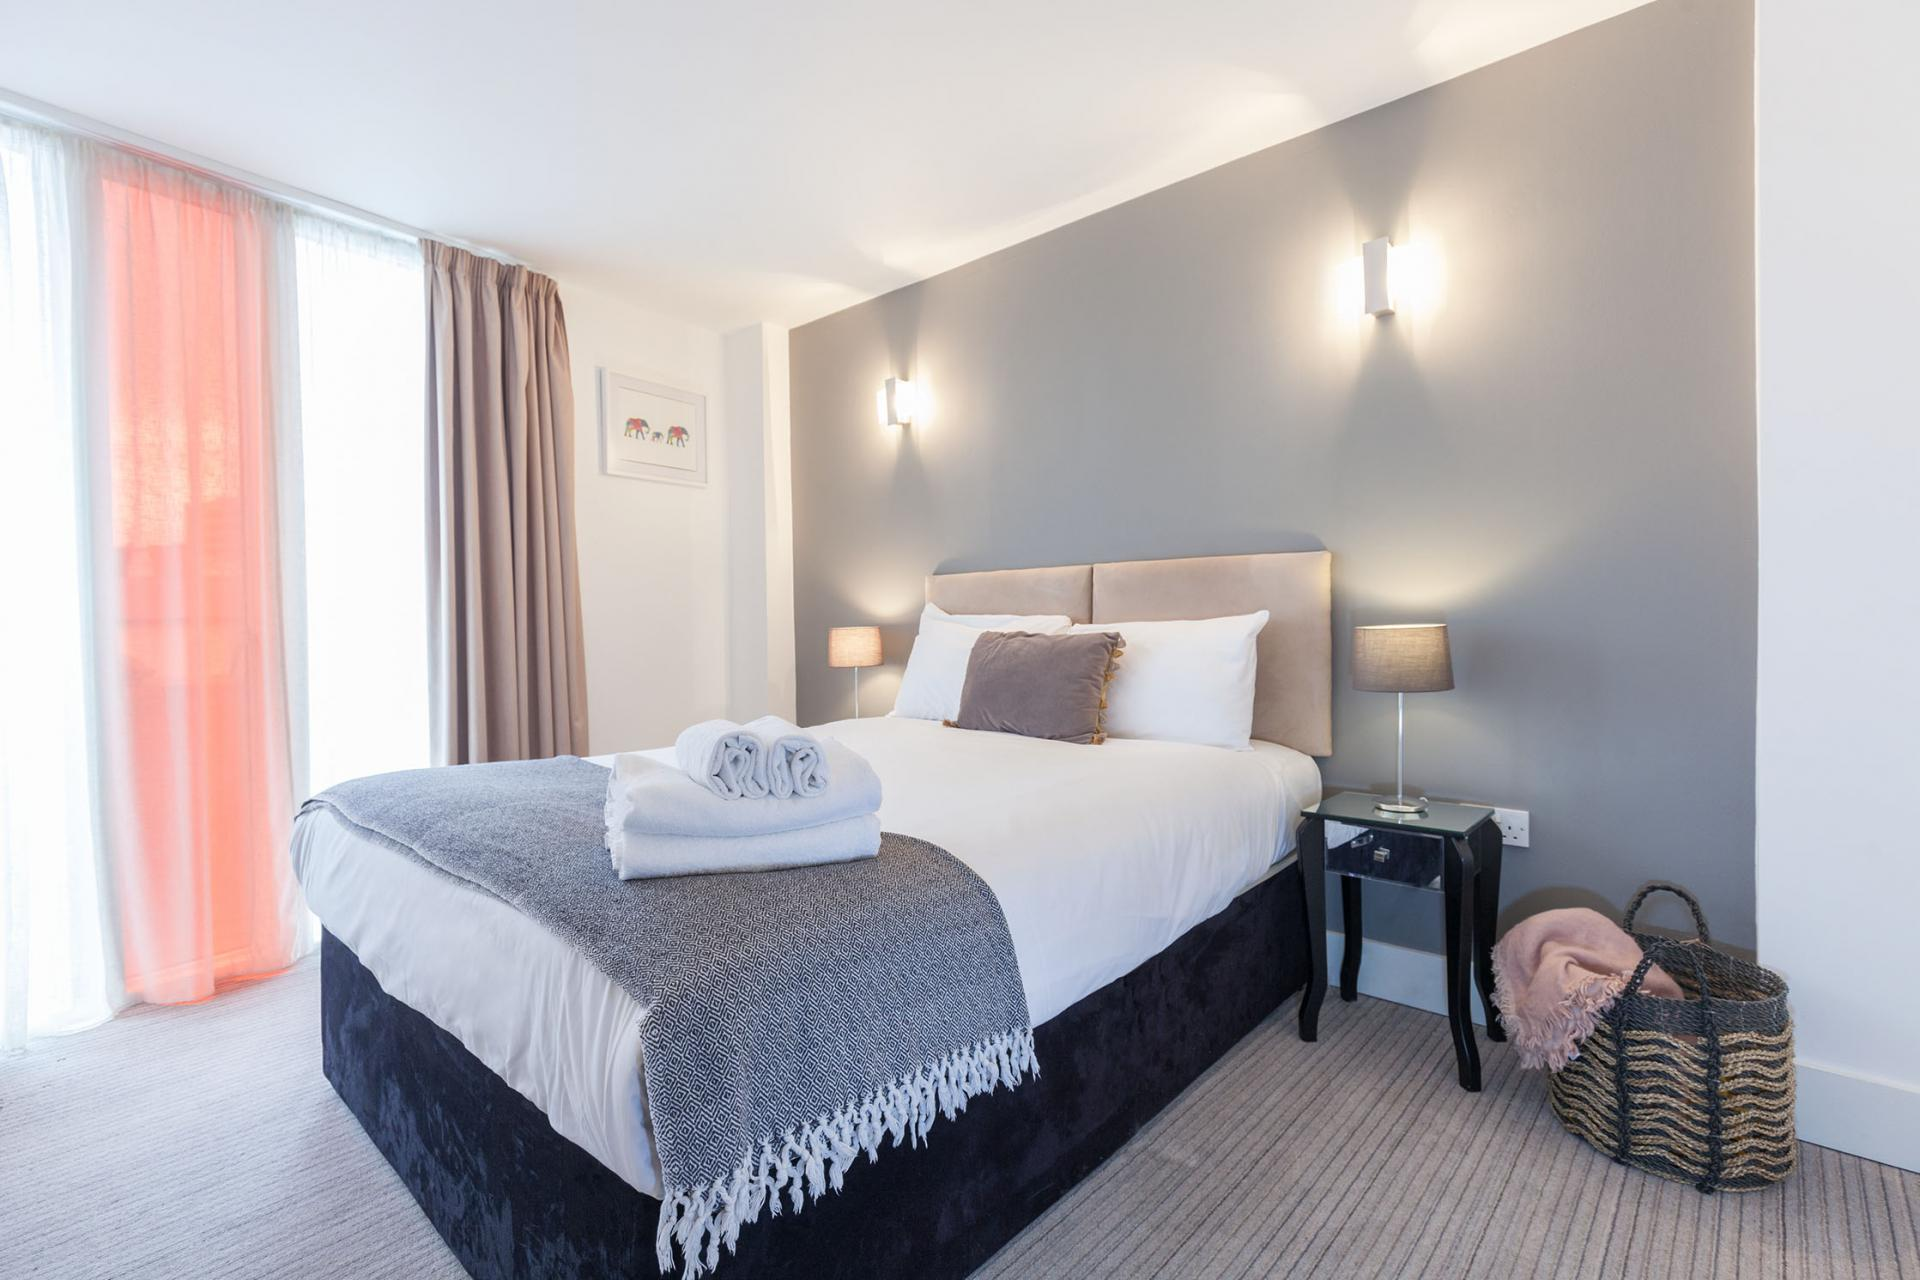 Guest bedroom at Sinclair Apartments, Centre, Sheffield - Citybase Apartments